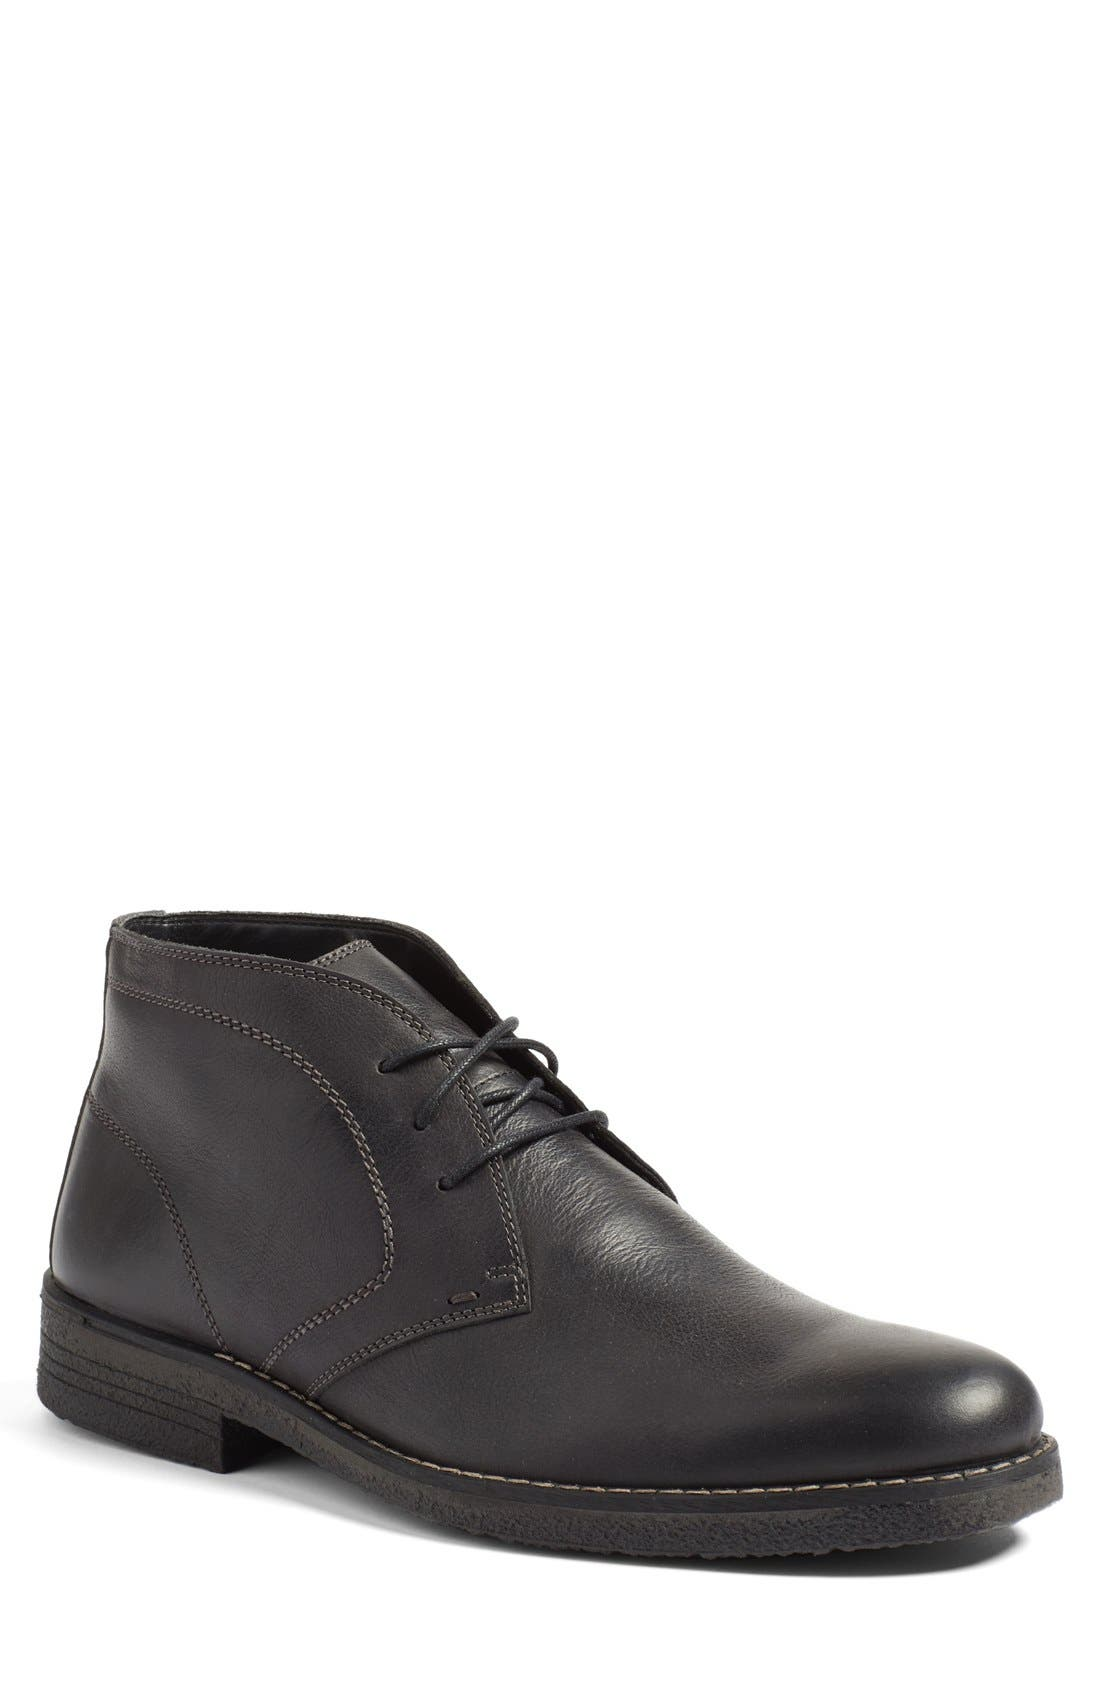 'Tyler' Chukka Boot,                         Main,                         color,